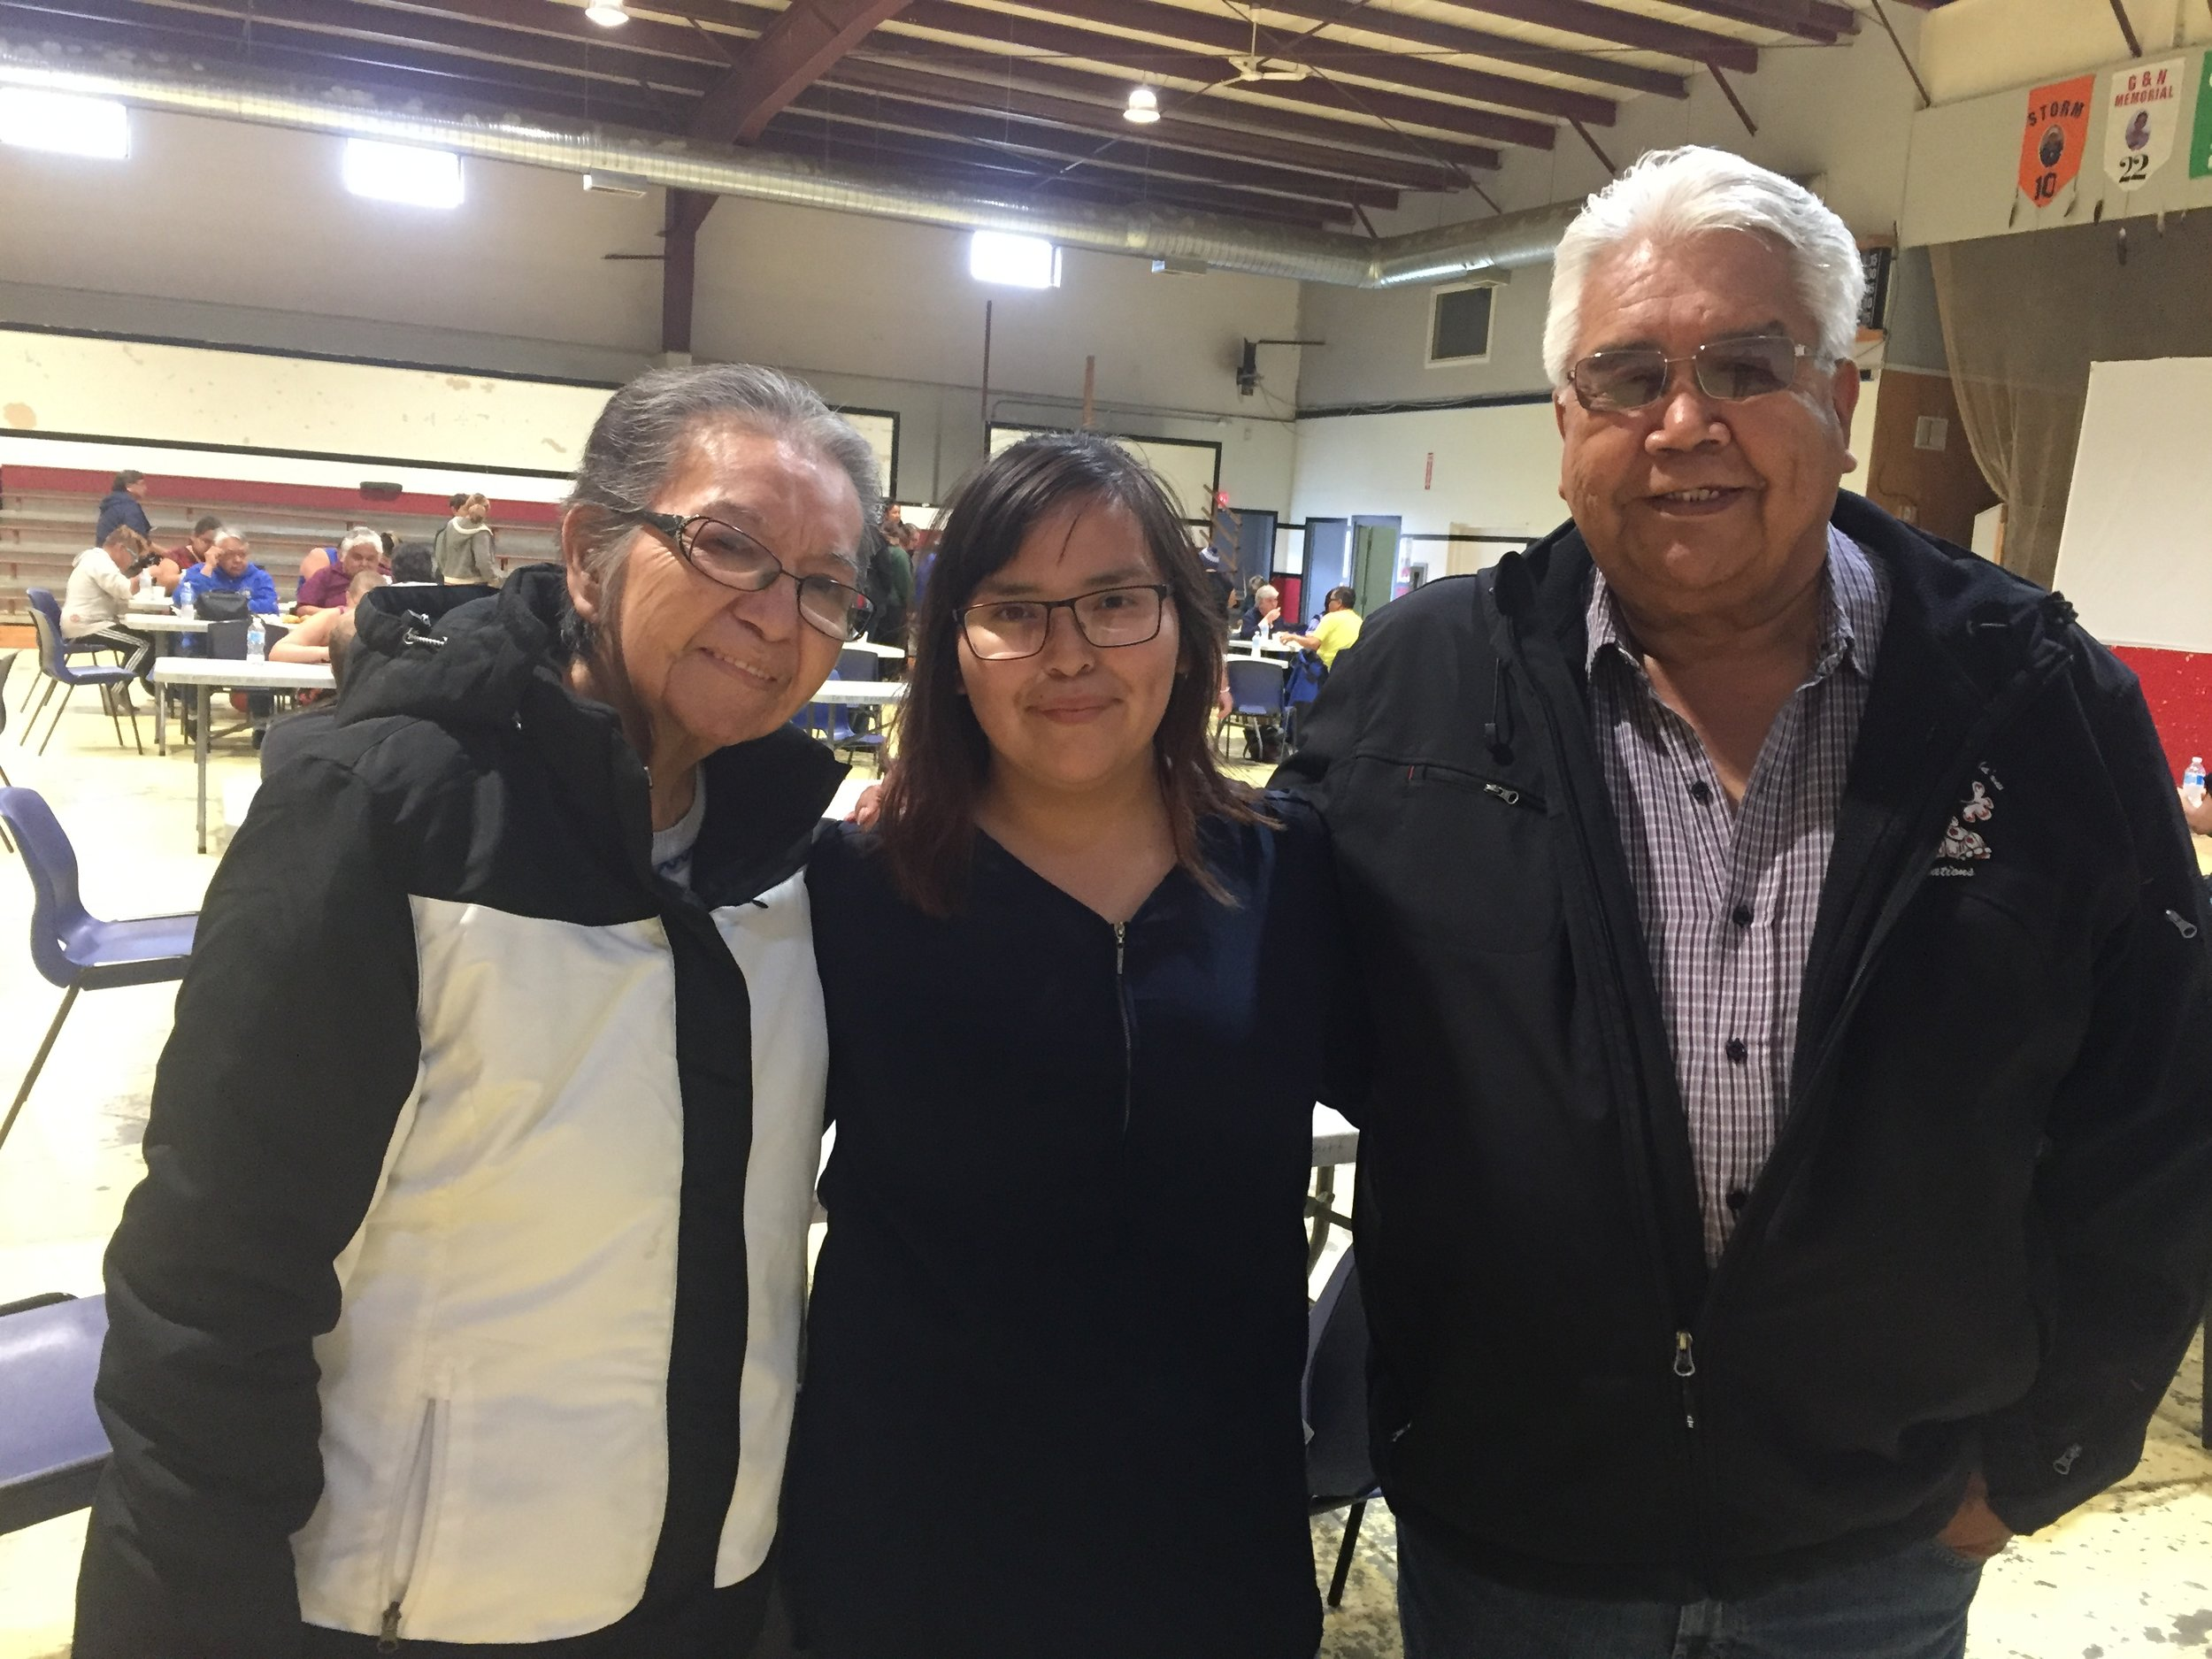 Kelly (student filmmaker) and her grandparents